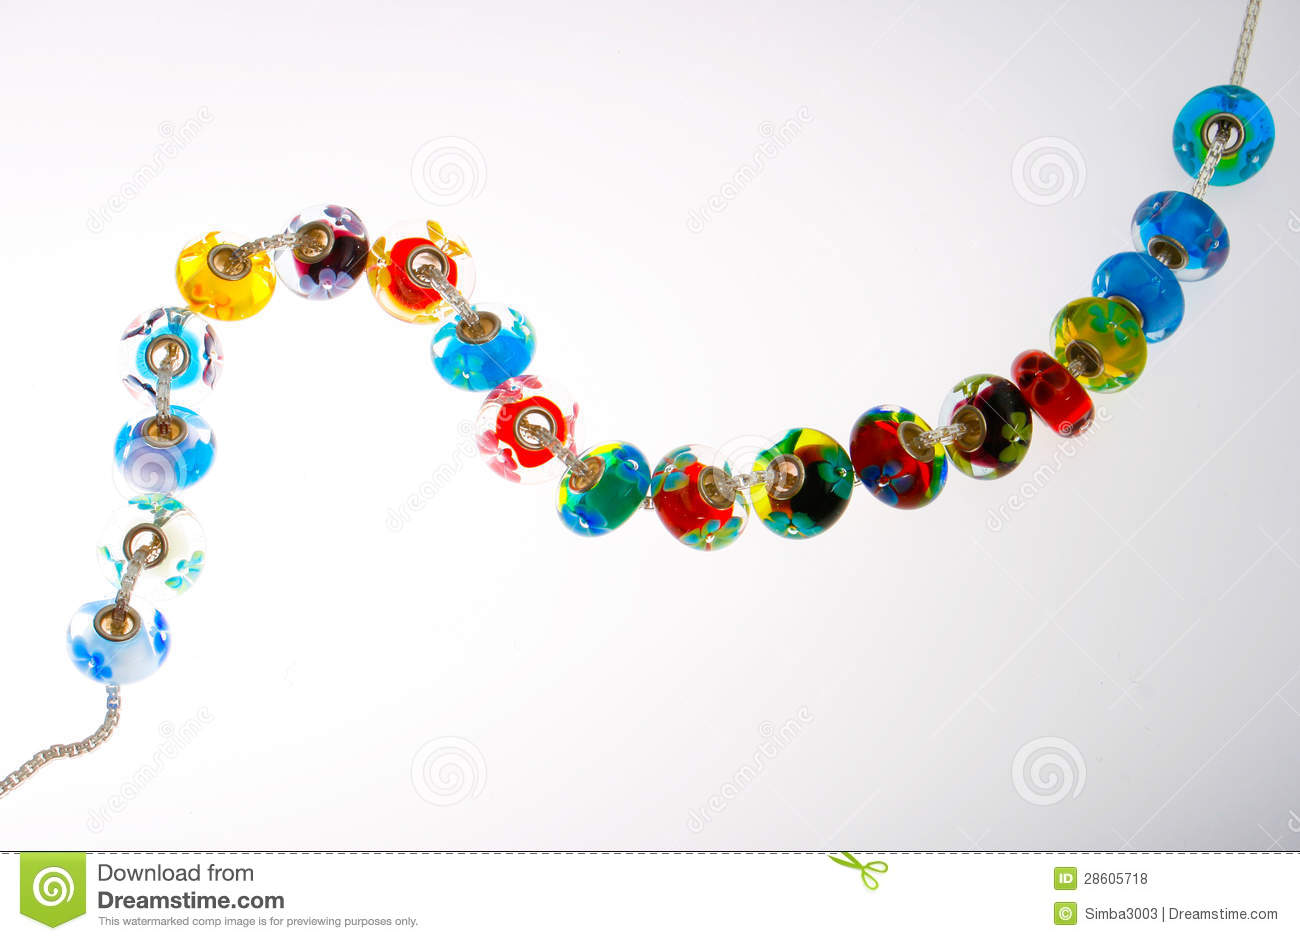 Glass Beads On String Royalty Free Stock Photos - Image: 28605718